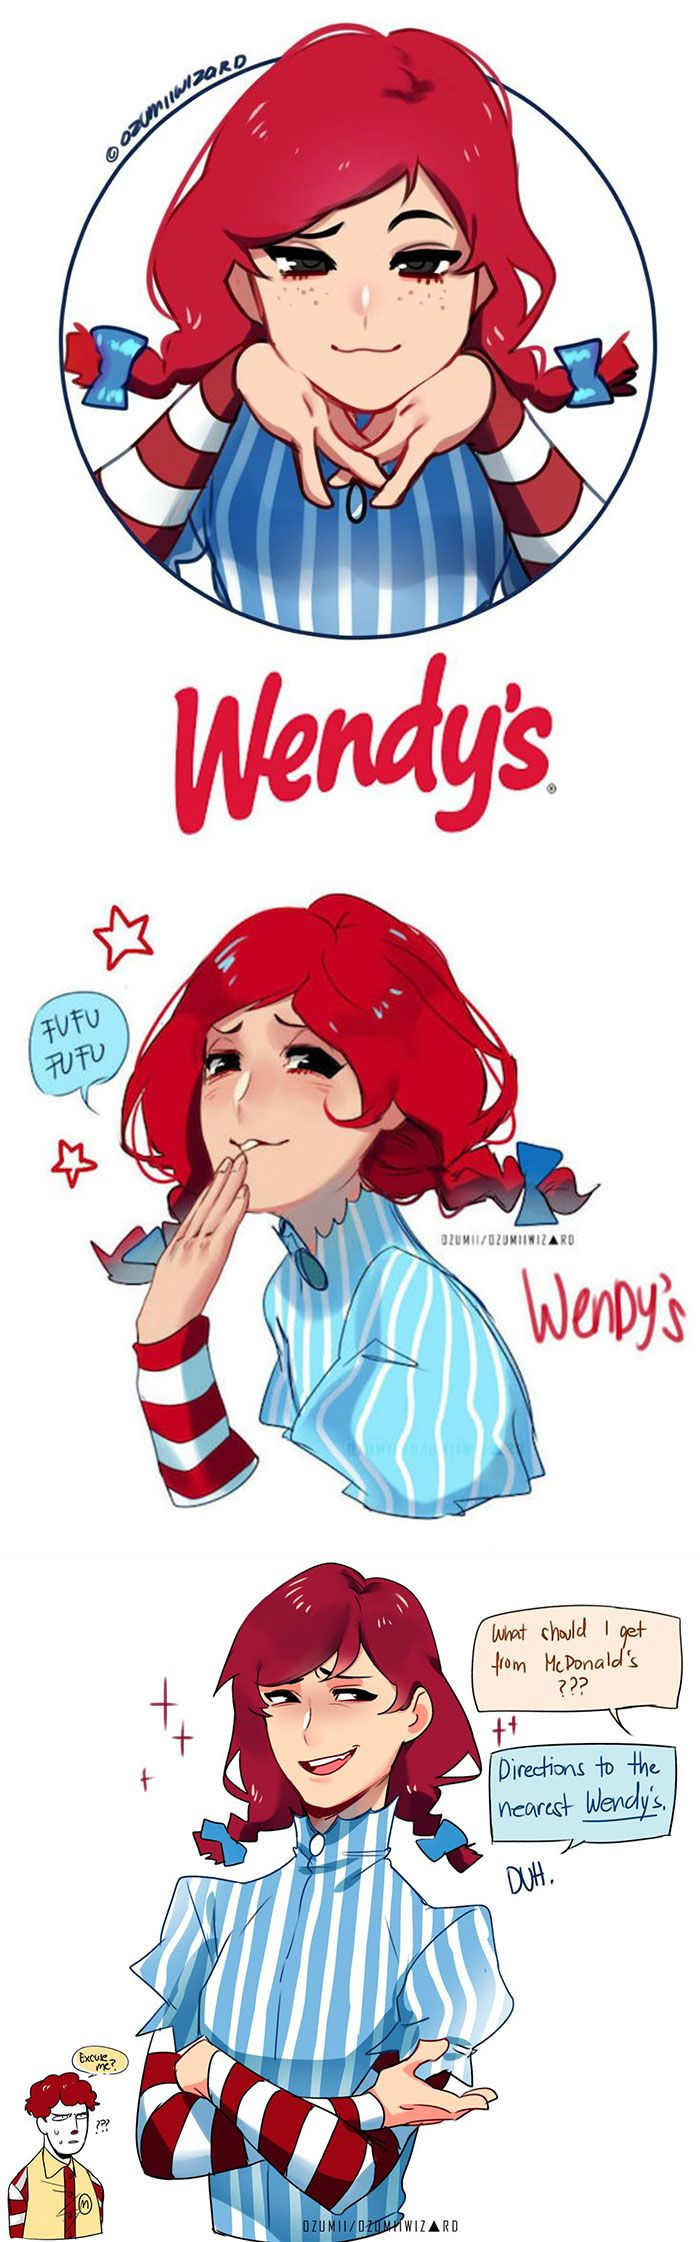 Wendy Illustrator Reimagines Fast Food Mascots As Anime Characters And Now Everyone Wants To Read Their Manga by Ozumii